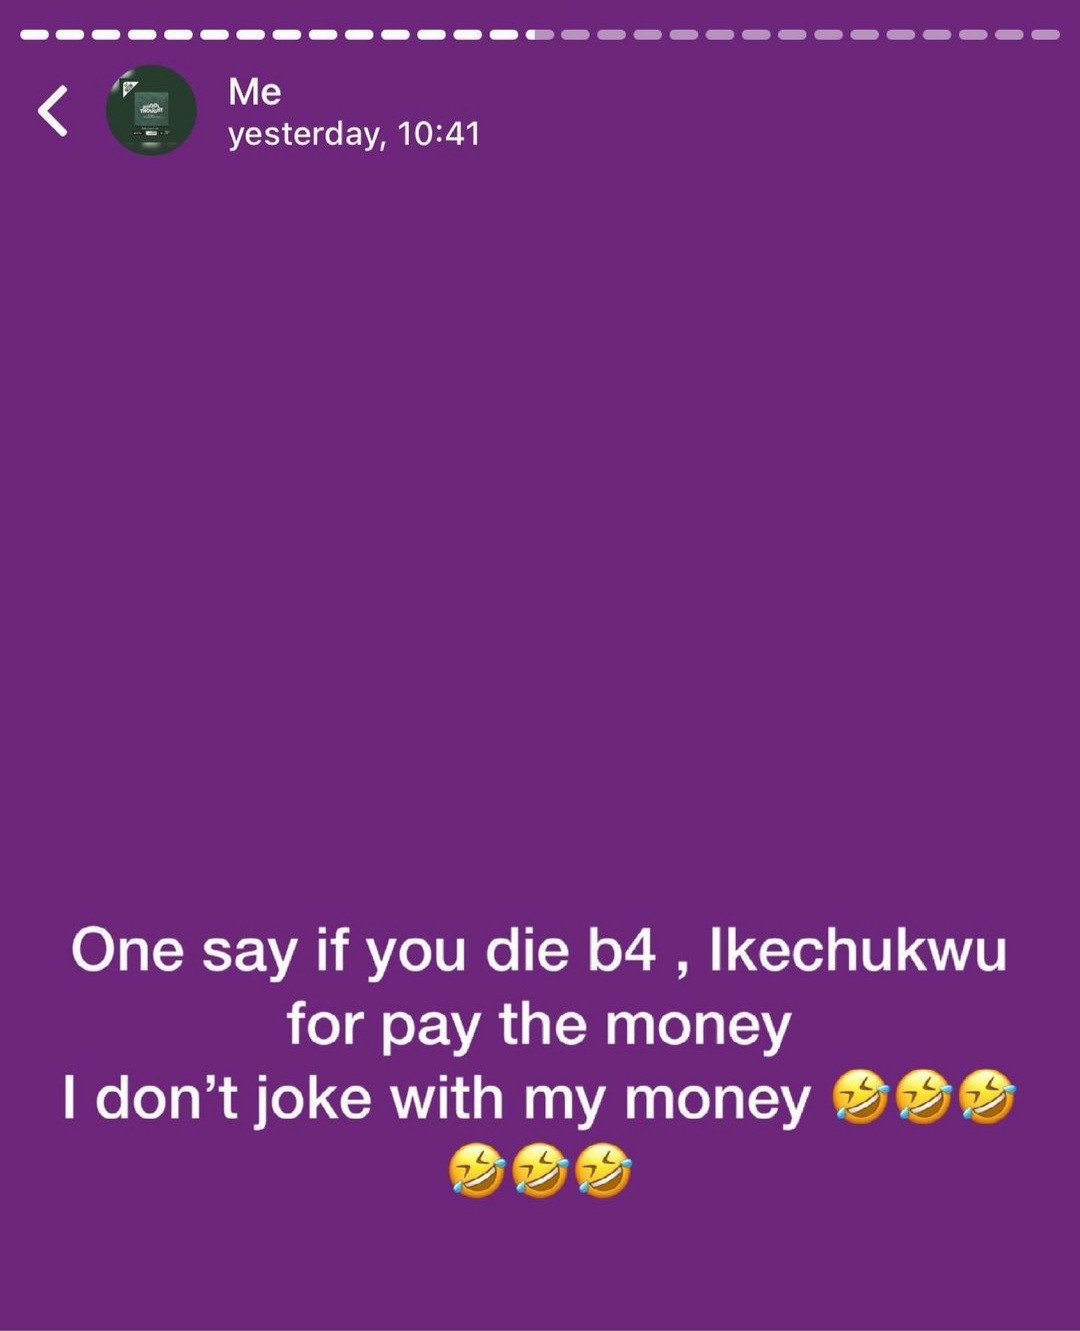 Warri Pikin says she attempted suicide over unpaid debts as she shares cruel things her creditors and friends said afterwards